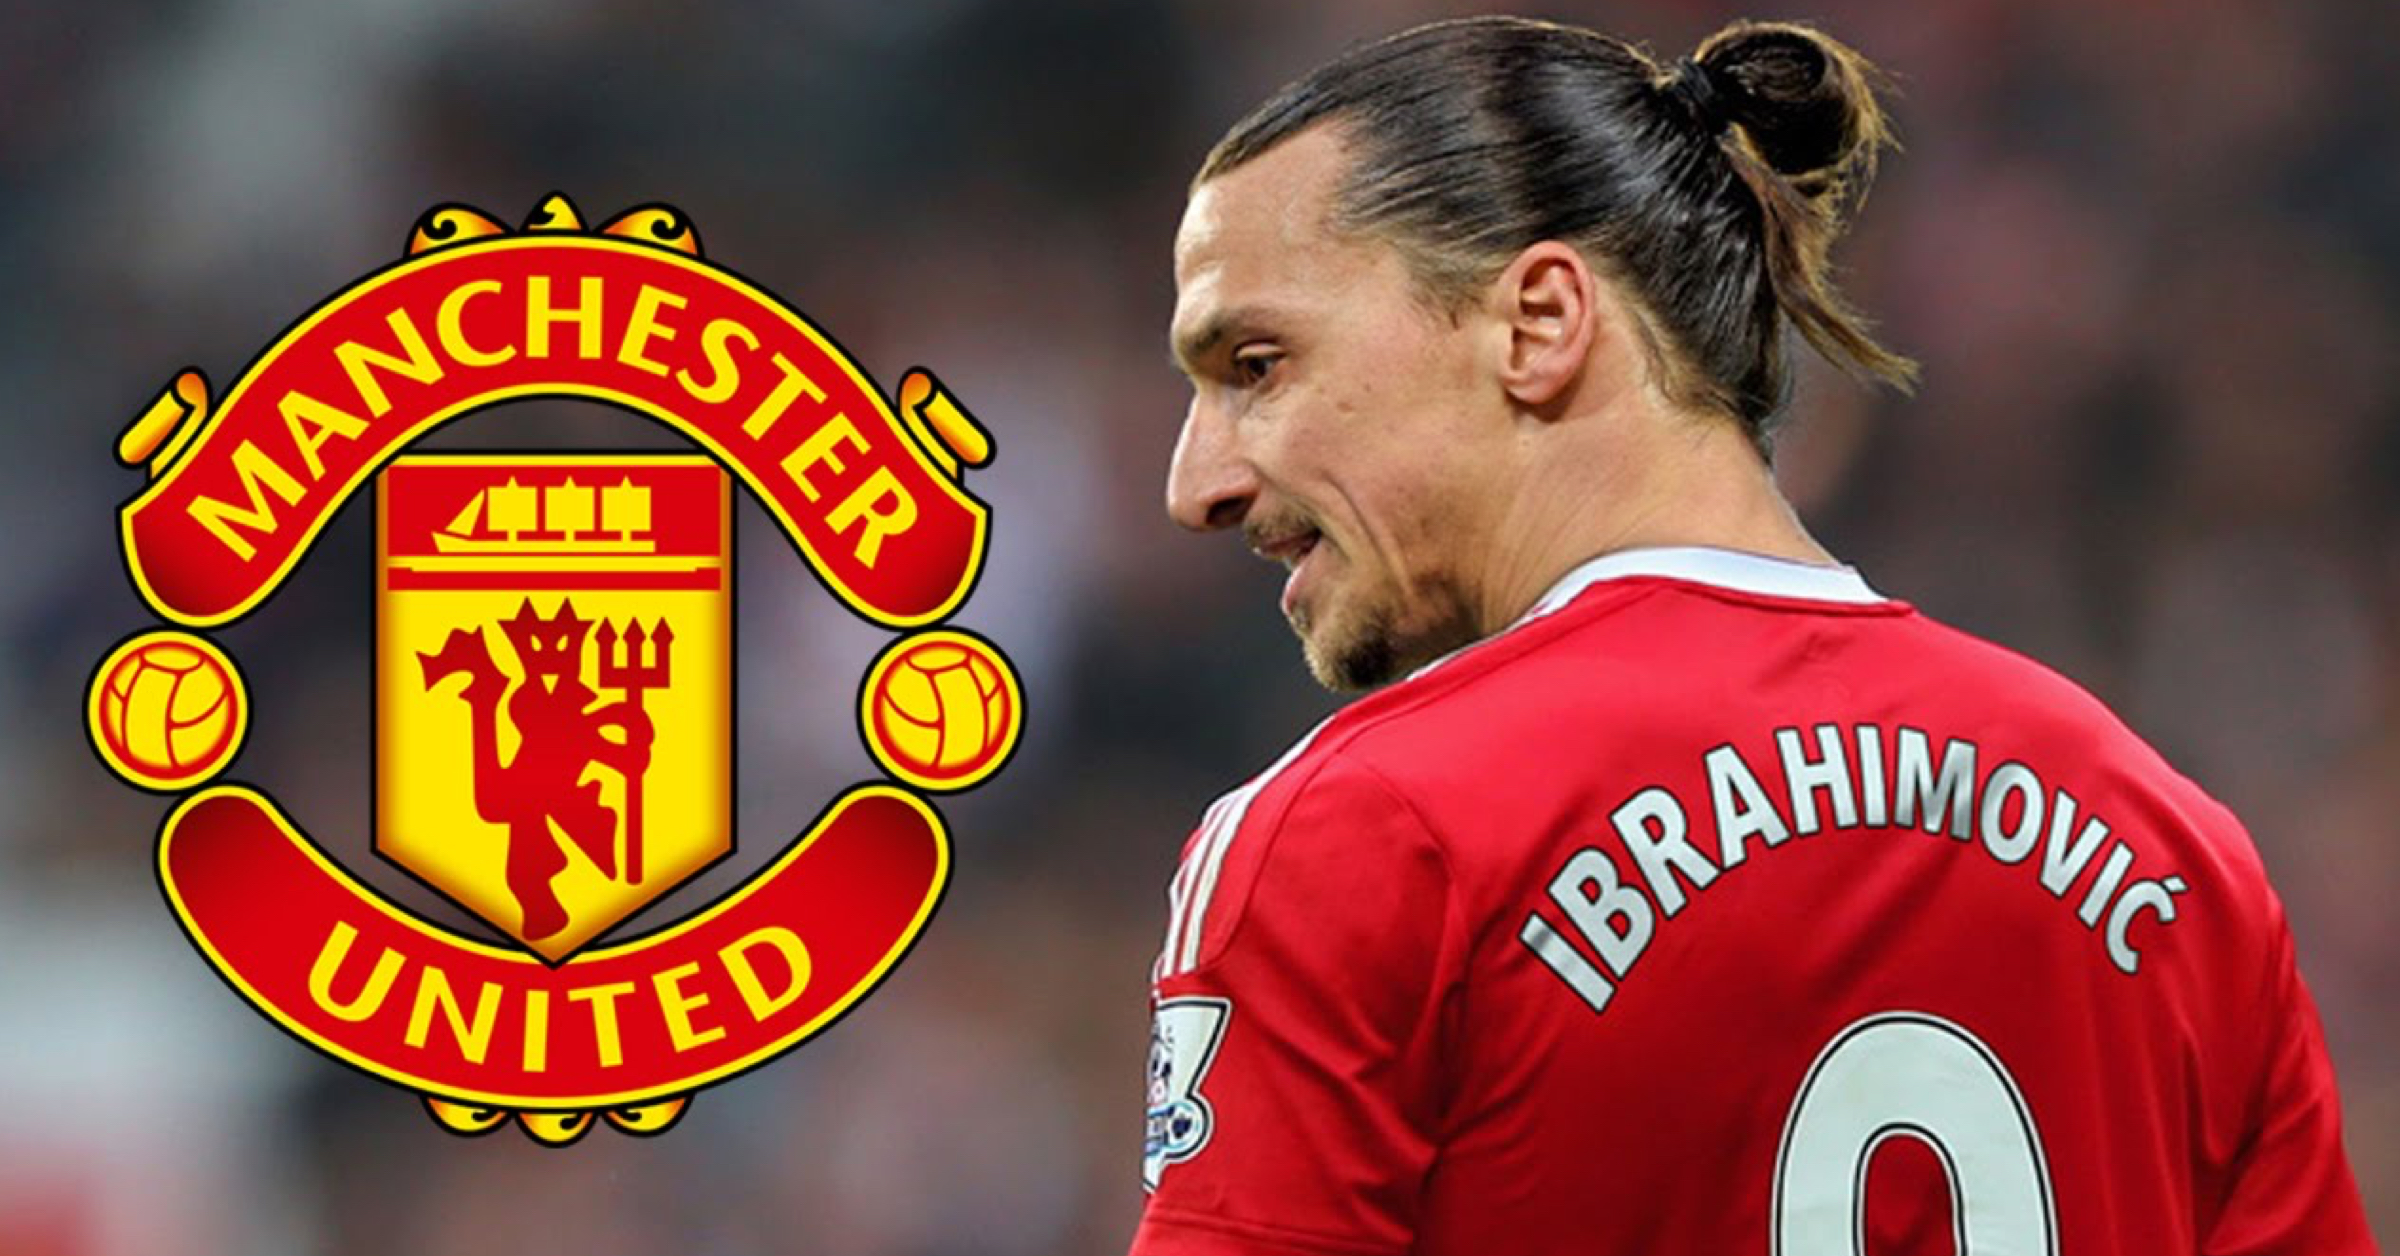 Zlatan Ibrahimovic Expected To Sign For Manchester United This Week